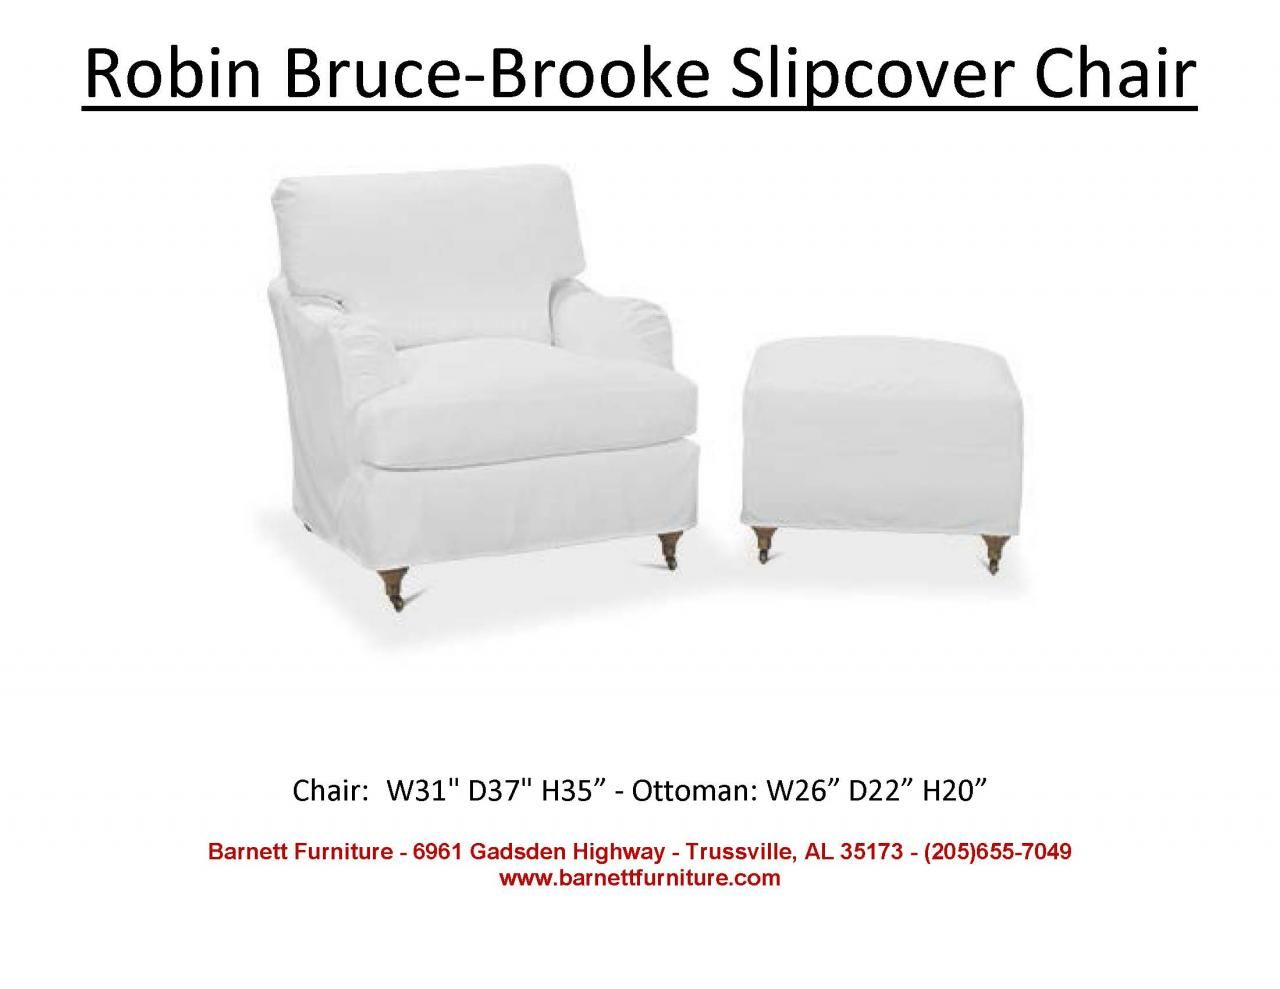 Robin Bruce Brooke Slipcover Chair You Choose The Fabric